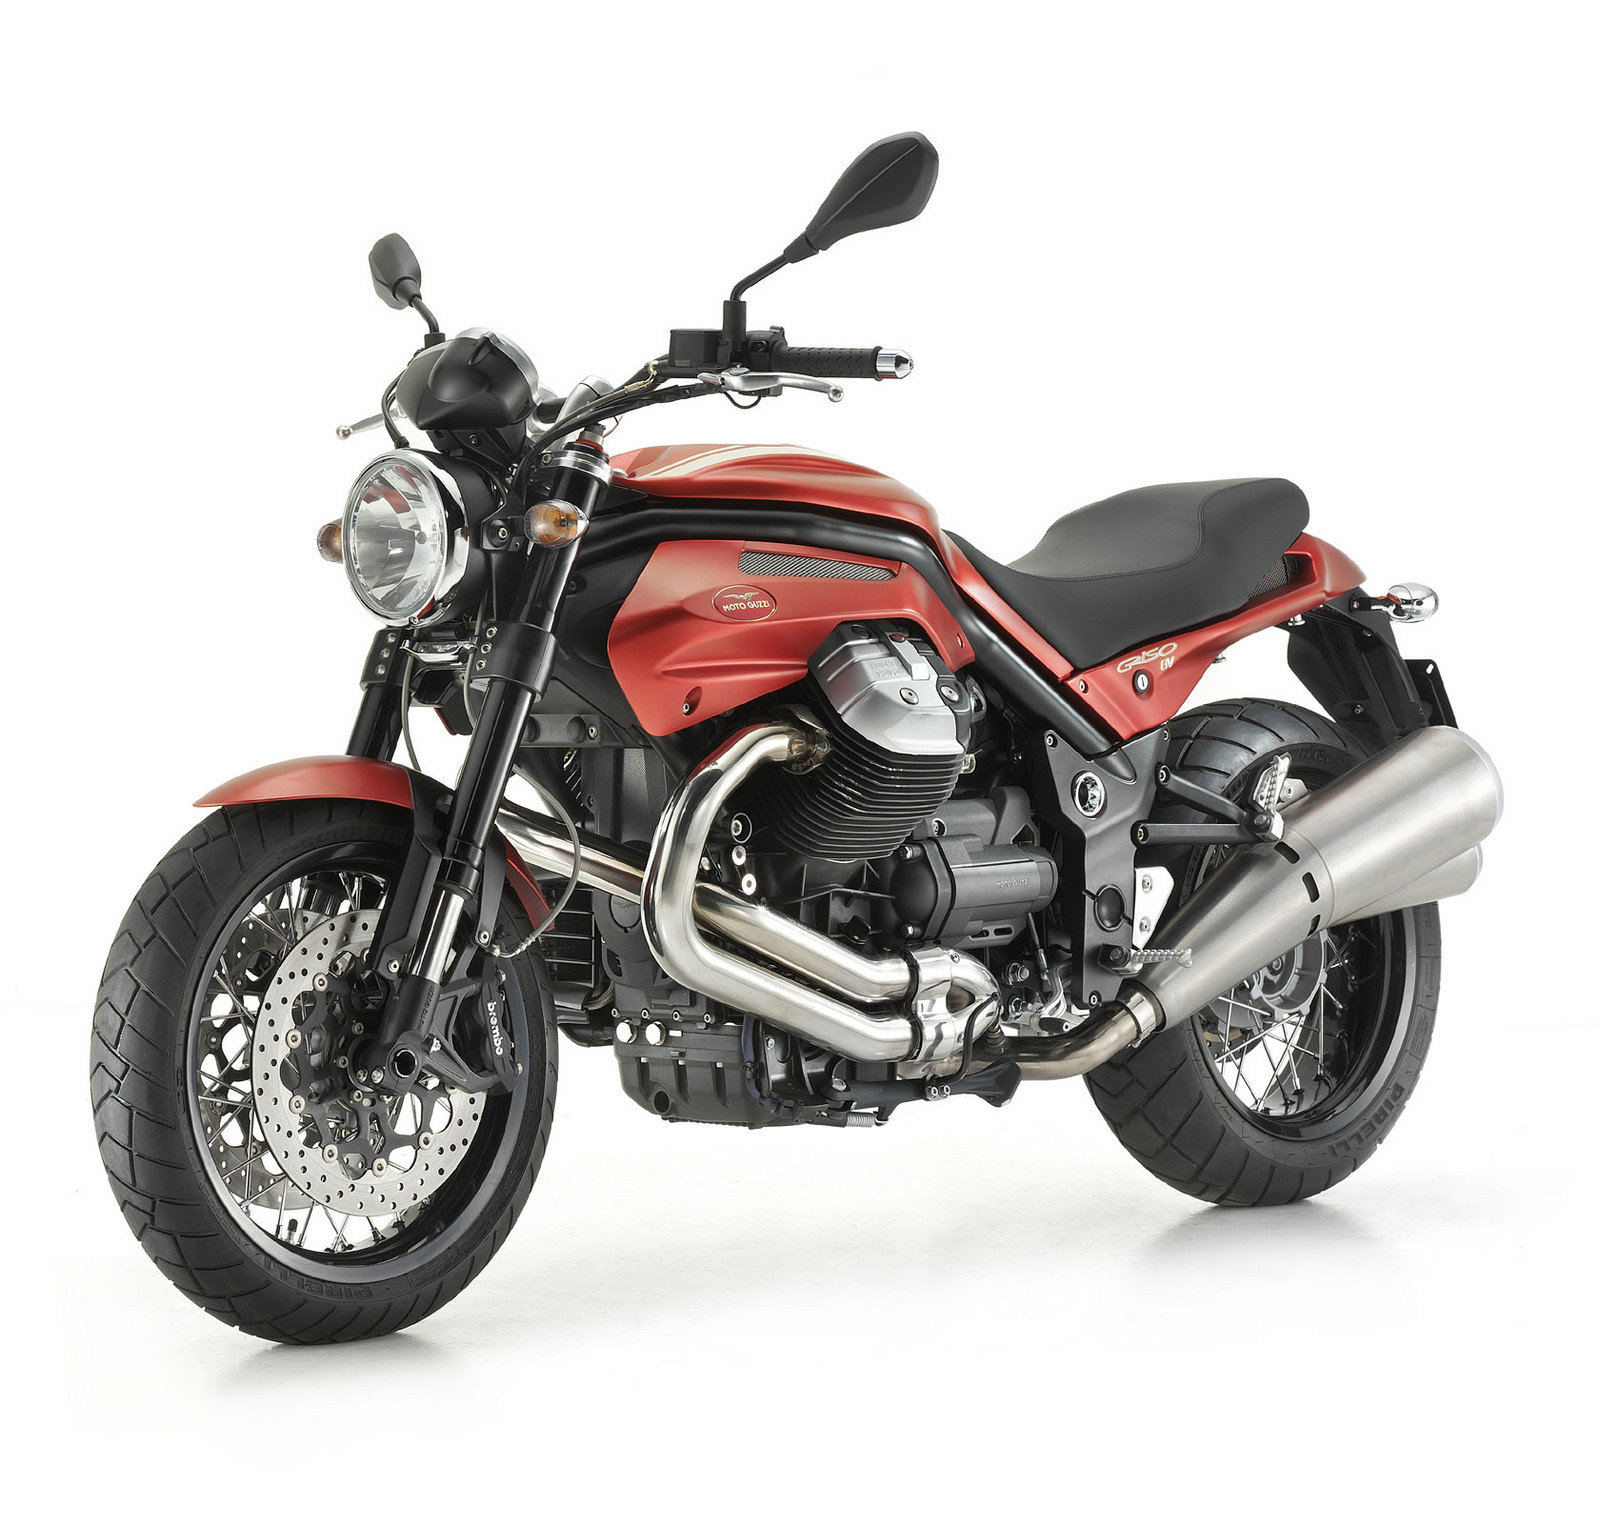 2012 moto guzzi griso 1200 8v picture 444642 motorcycle review top speed. Black Bedroom Furniture Sets. Home Design Ideas